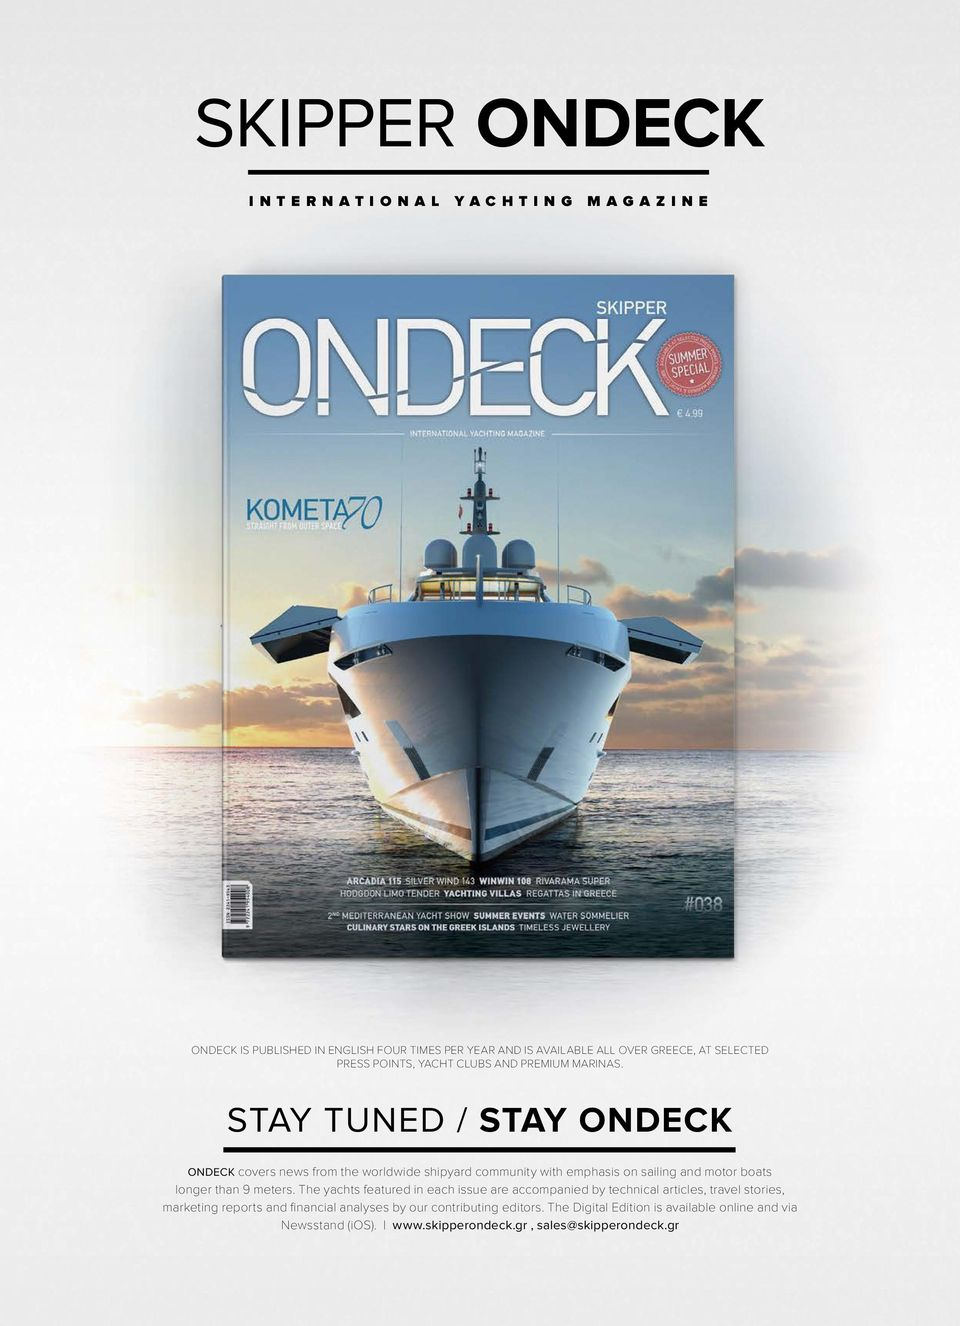 Stay tuned / Stay ONDECΚ OndECK covers news from the worldwide shipyard community with emphasis on sailing and motor boats longer than 9 meters.